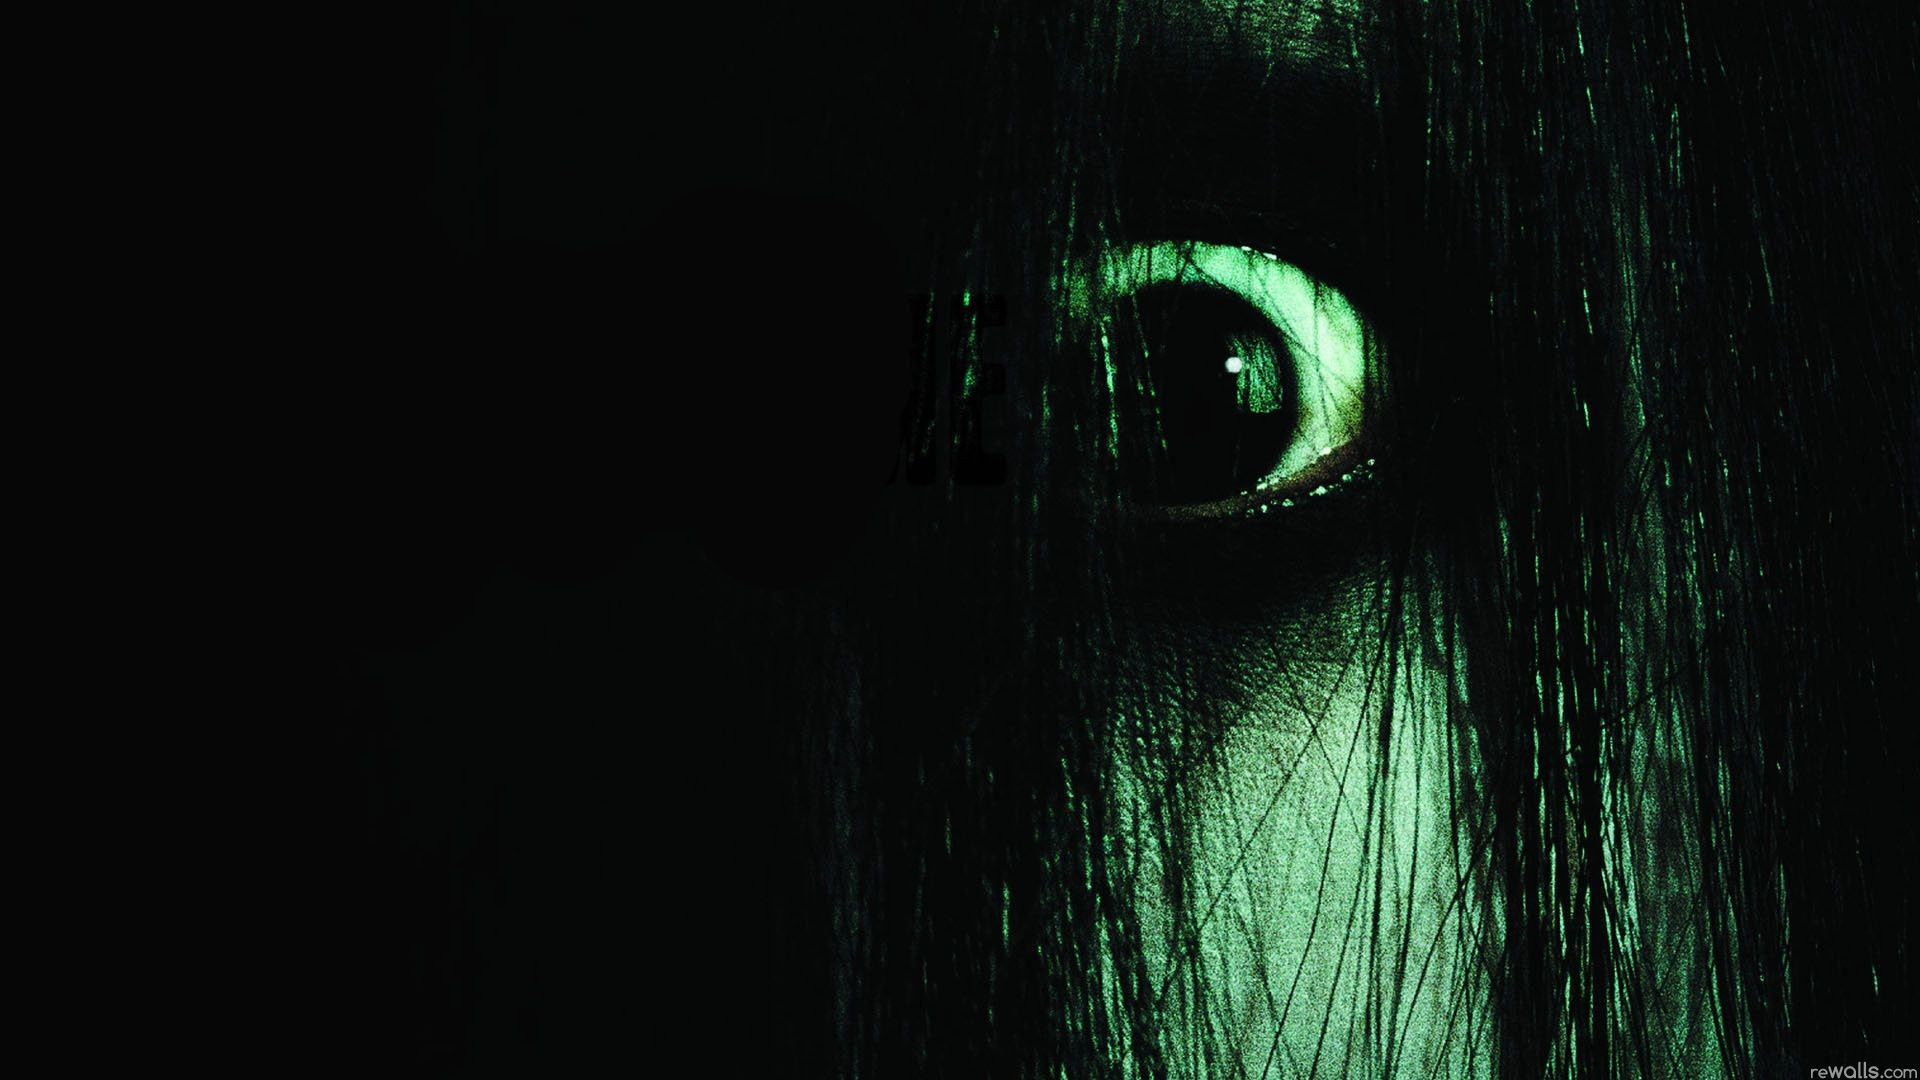 Res: 1920x1080, Haunted Eyes